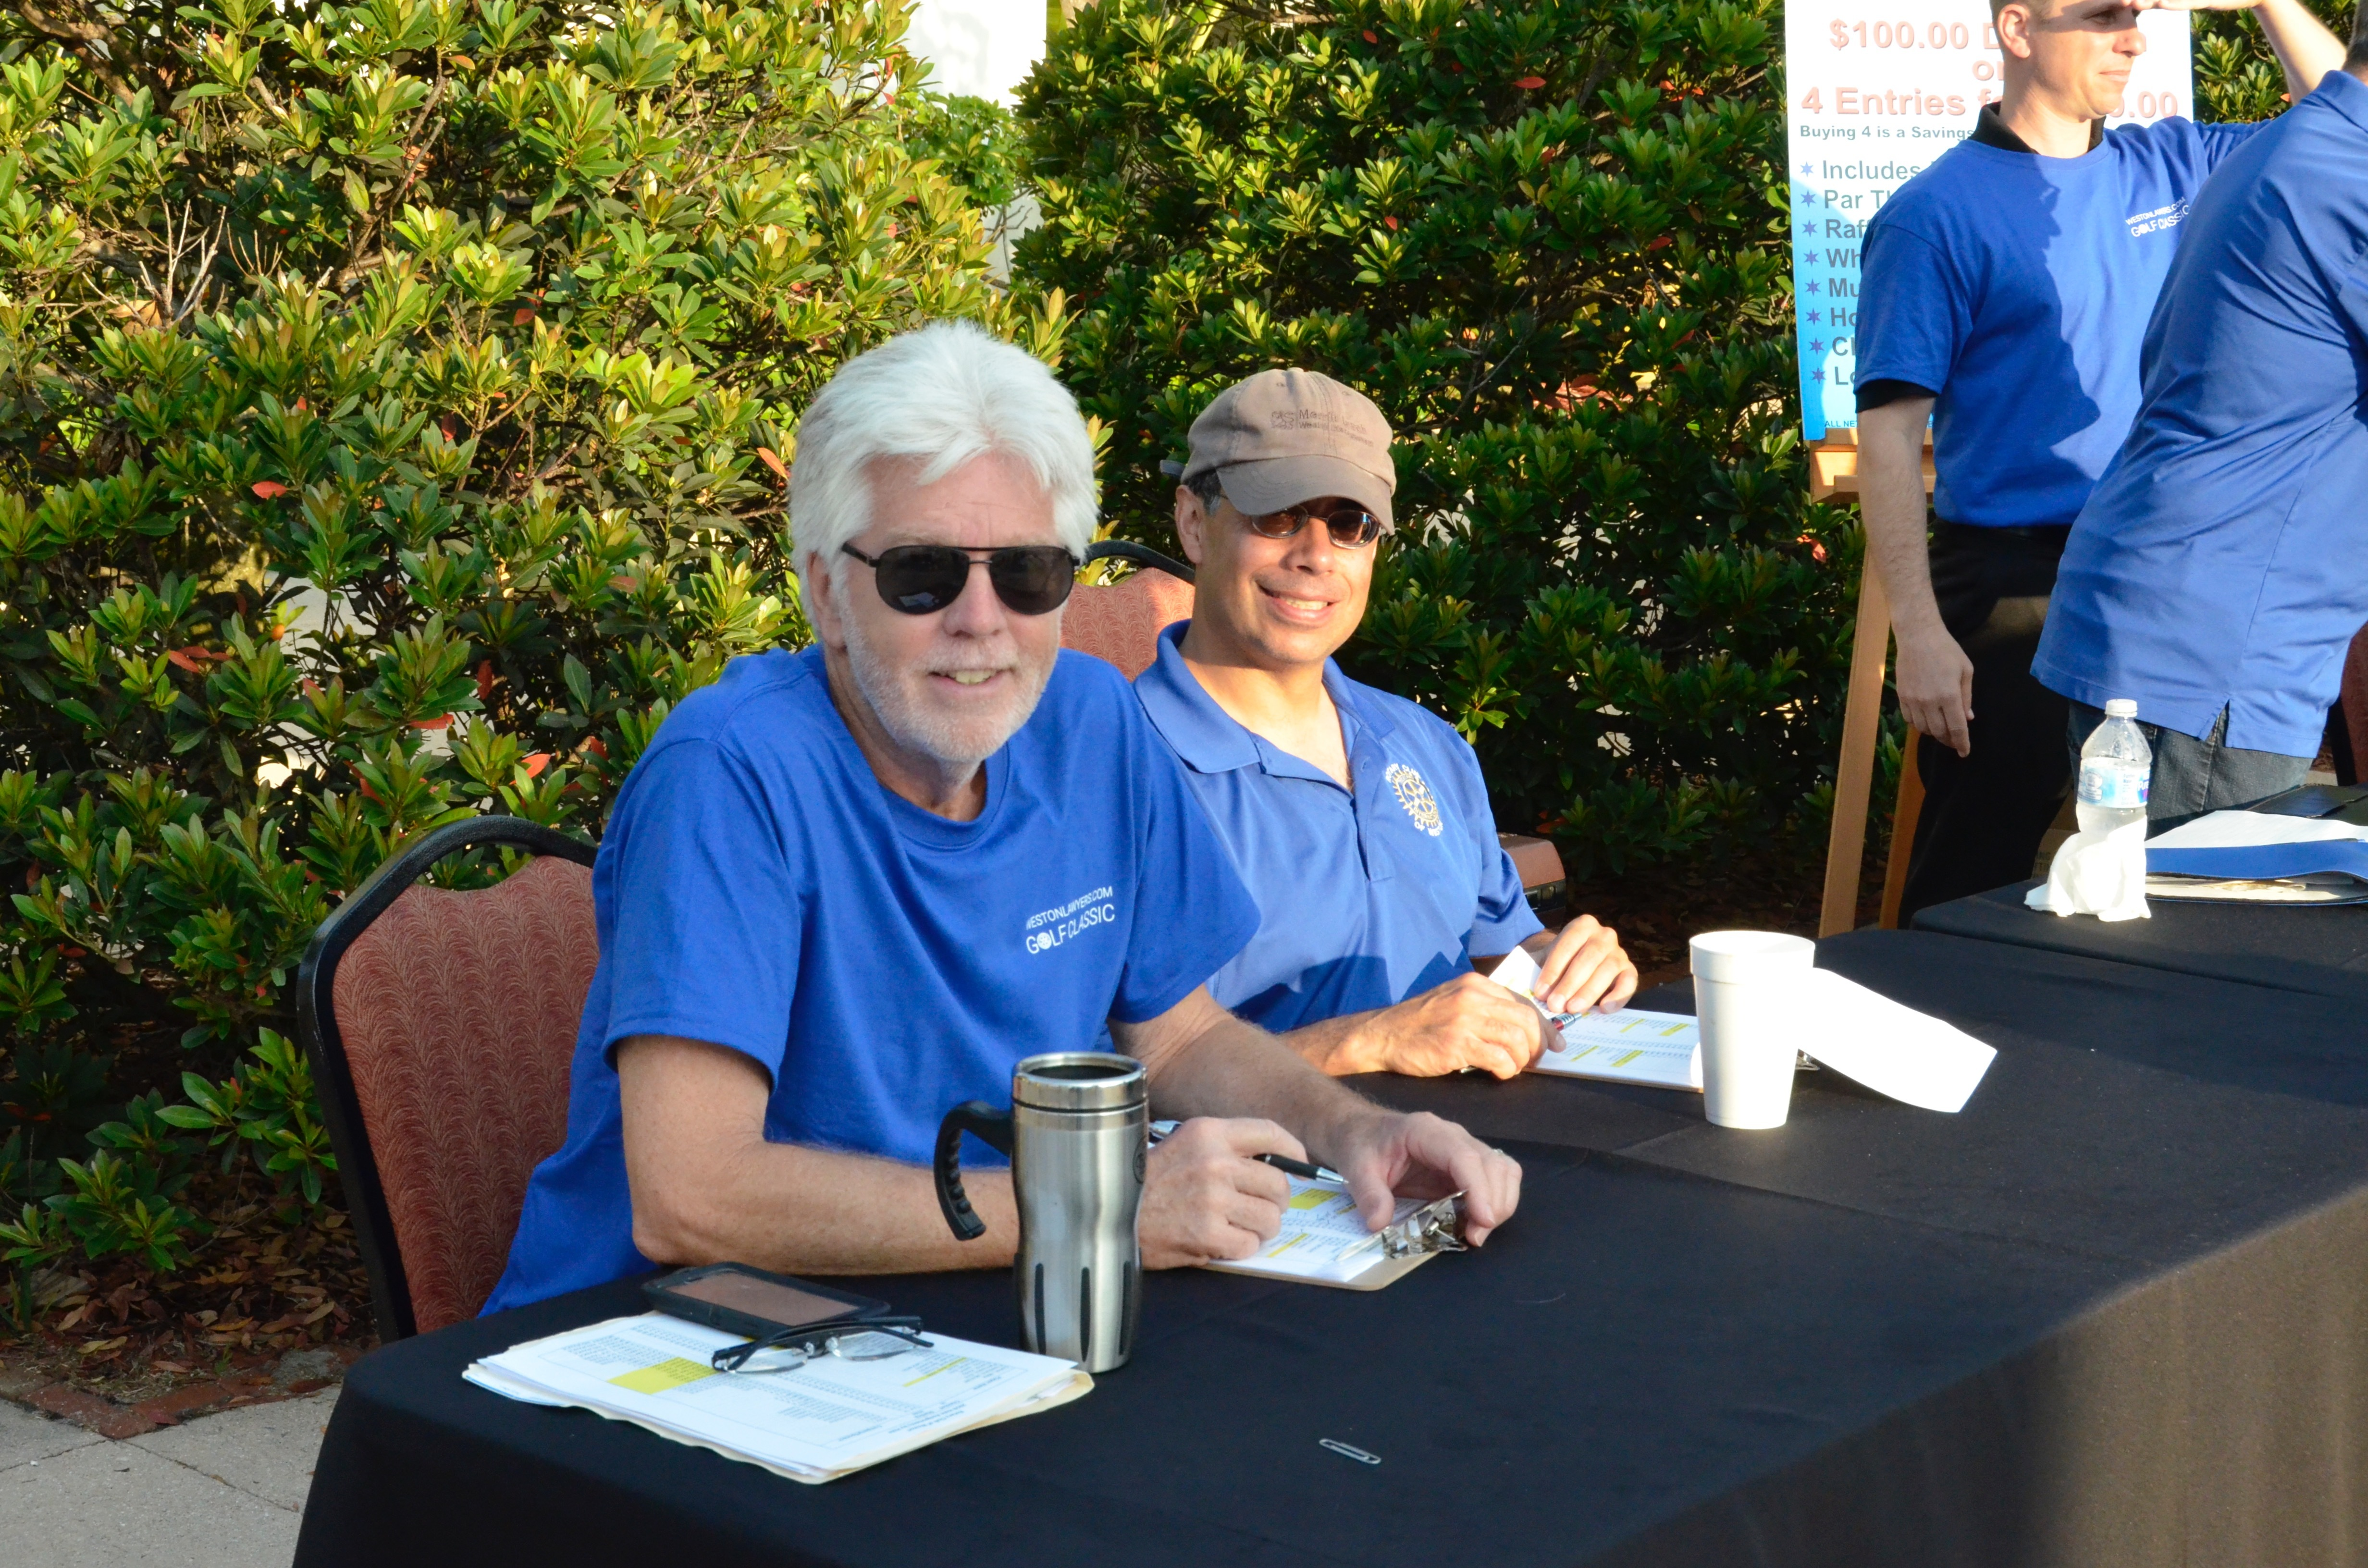 33rd Annual Rotary Golf Classic Sponsored by FHVLEGAL.COM gallery image #29